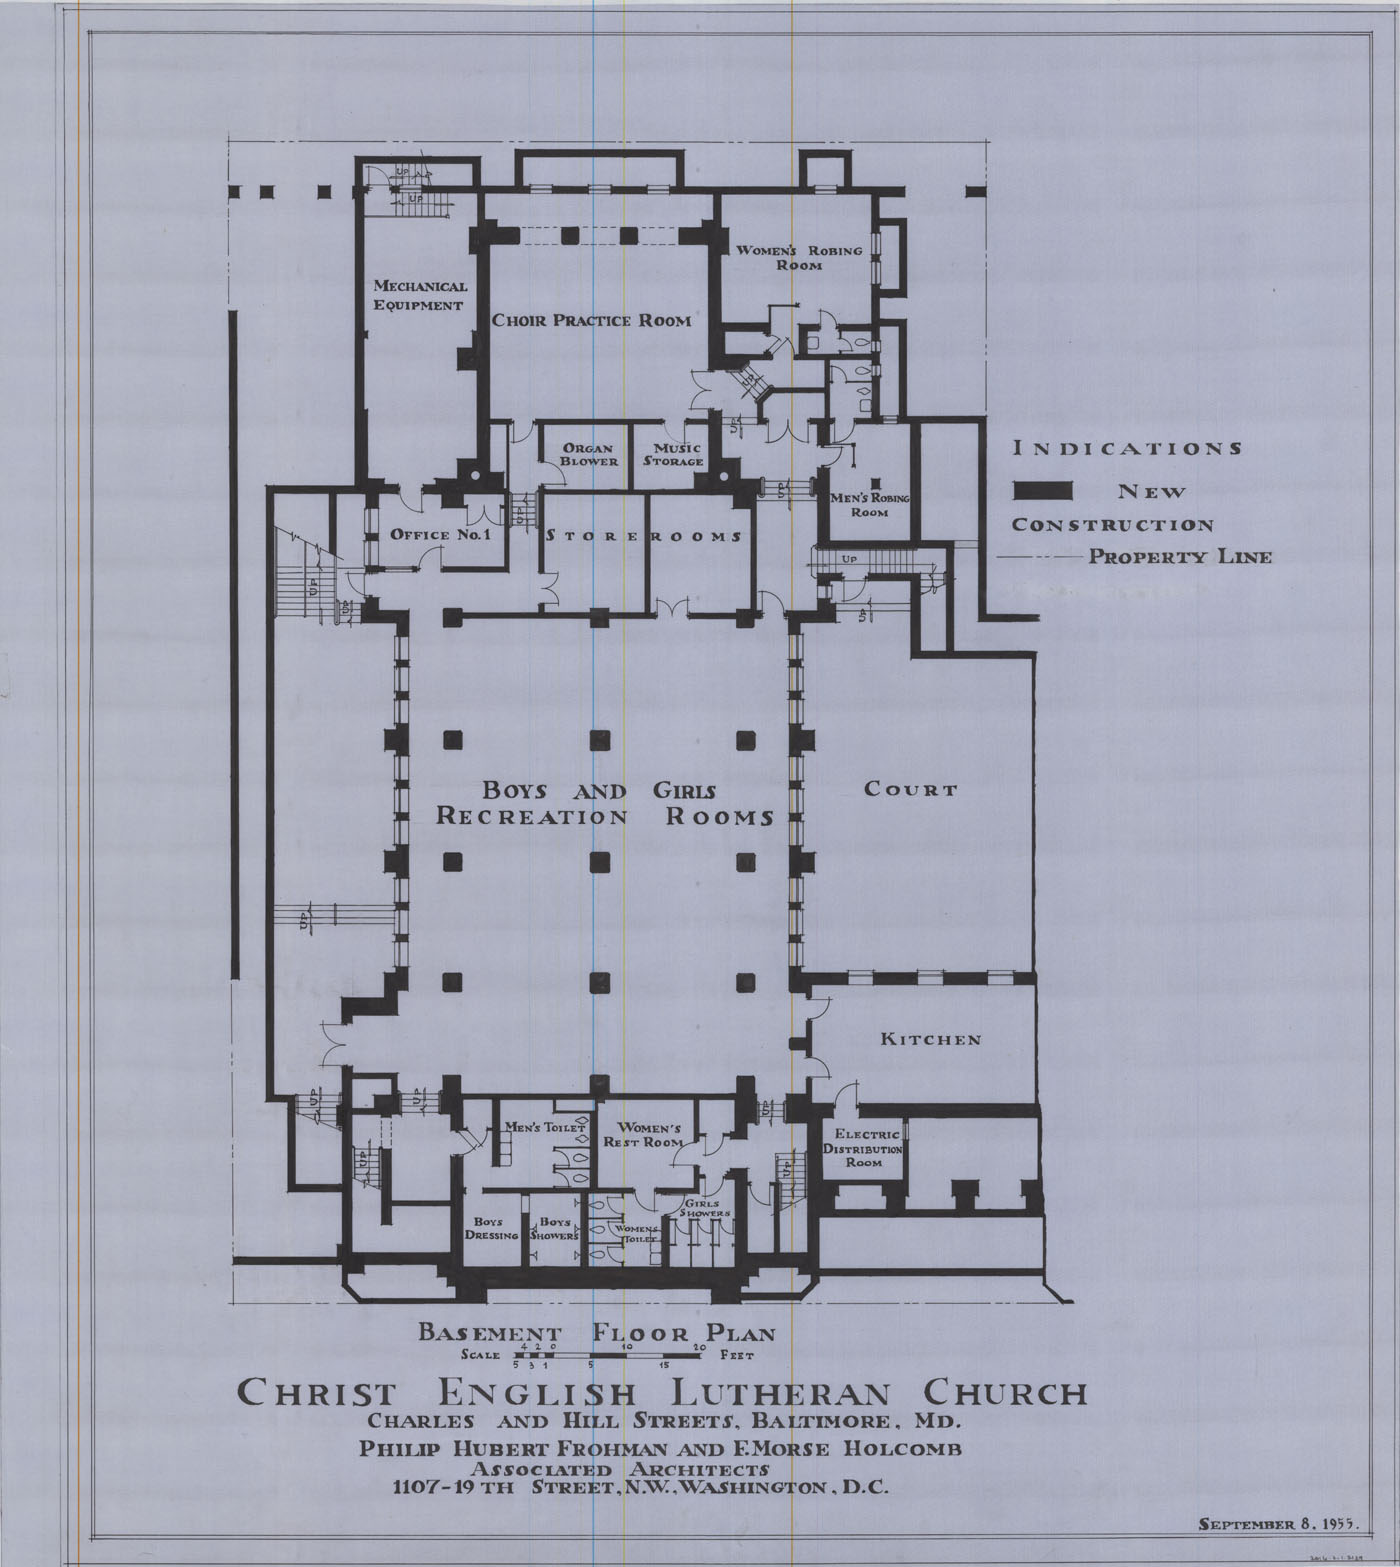 Philip Hubert Frohman Architectural Drawings at the National ...